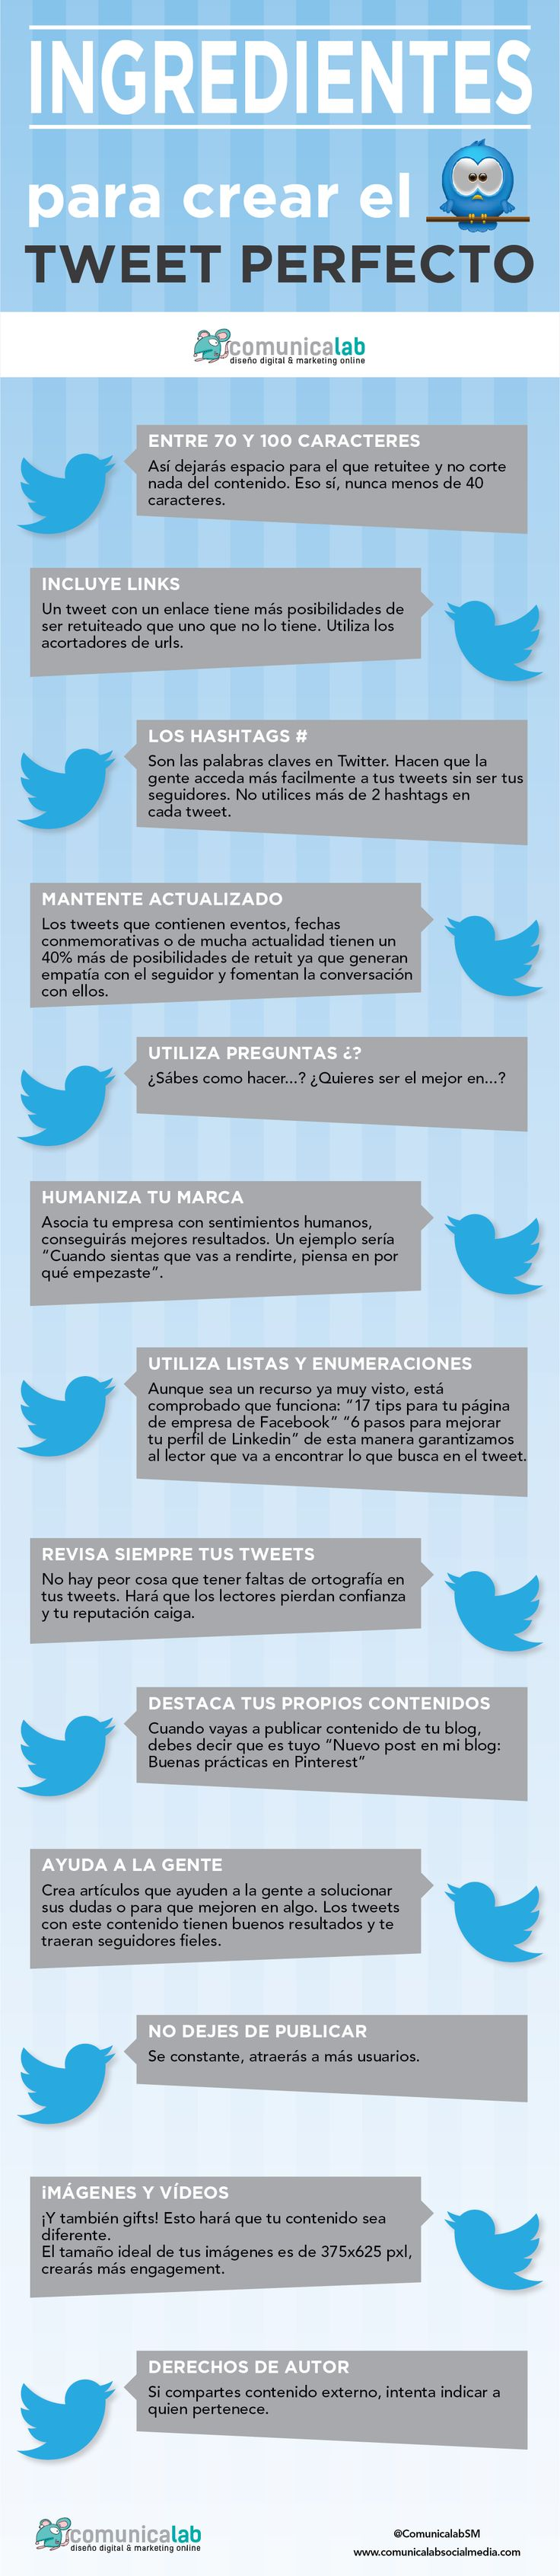 Los ingredientes del tweet perfecto